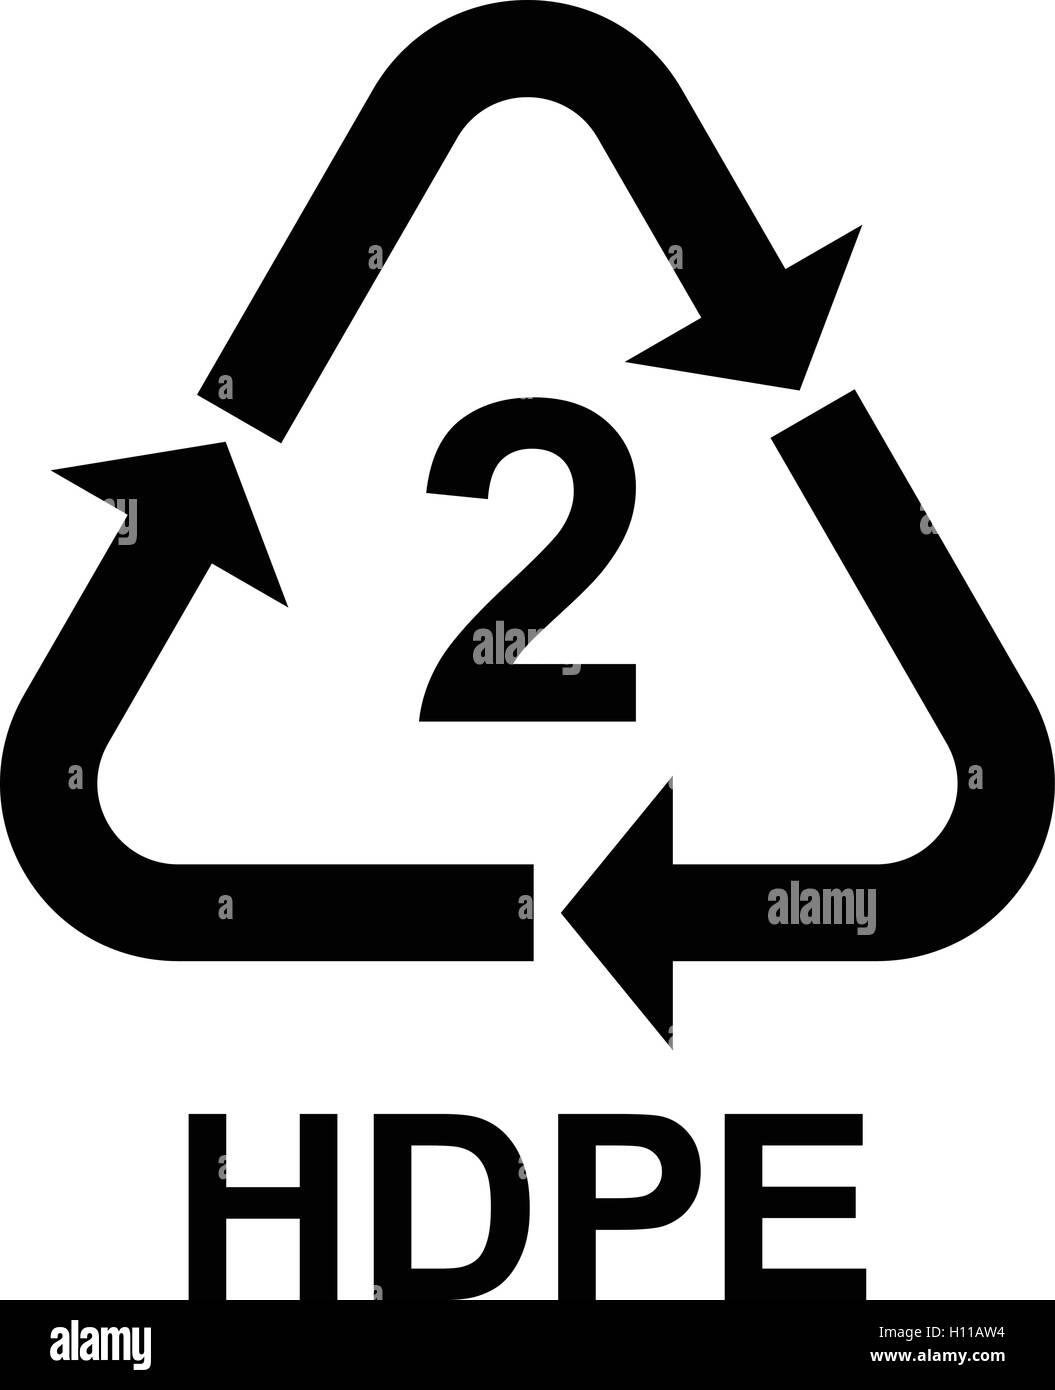 Mobius symbol black and white stock photos images alamy plastic recycling code hdpe 2 vector illustration buycottarizona Choice Image